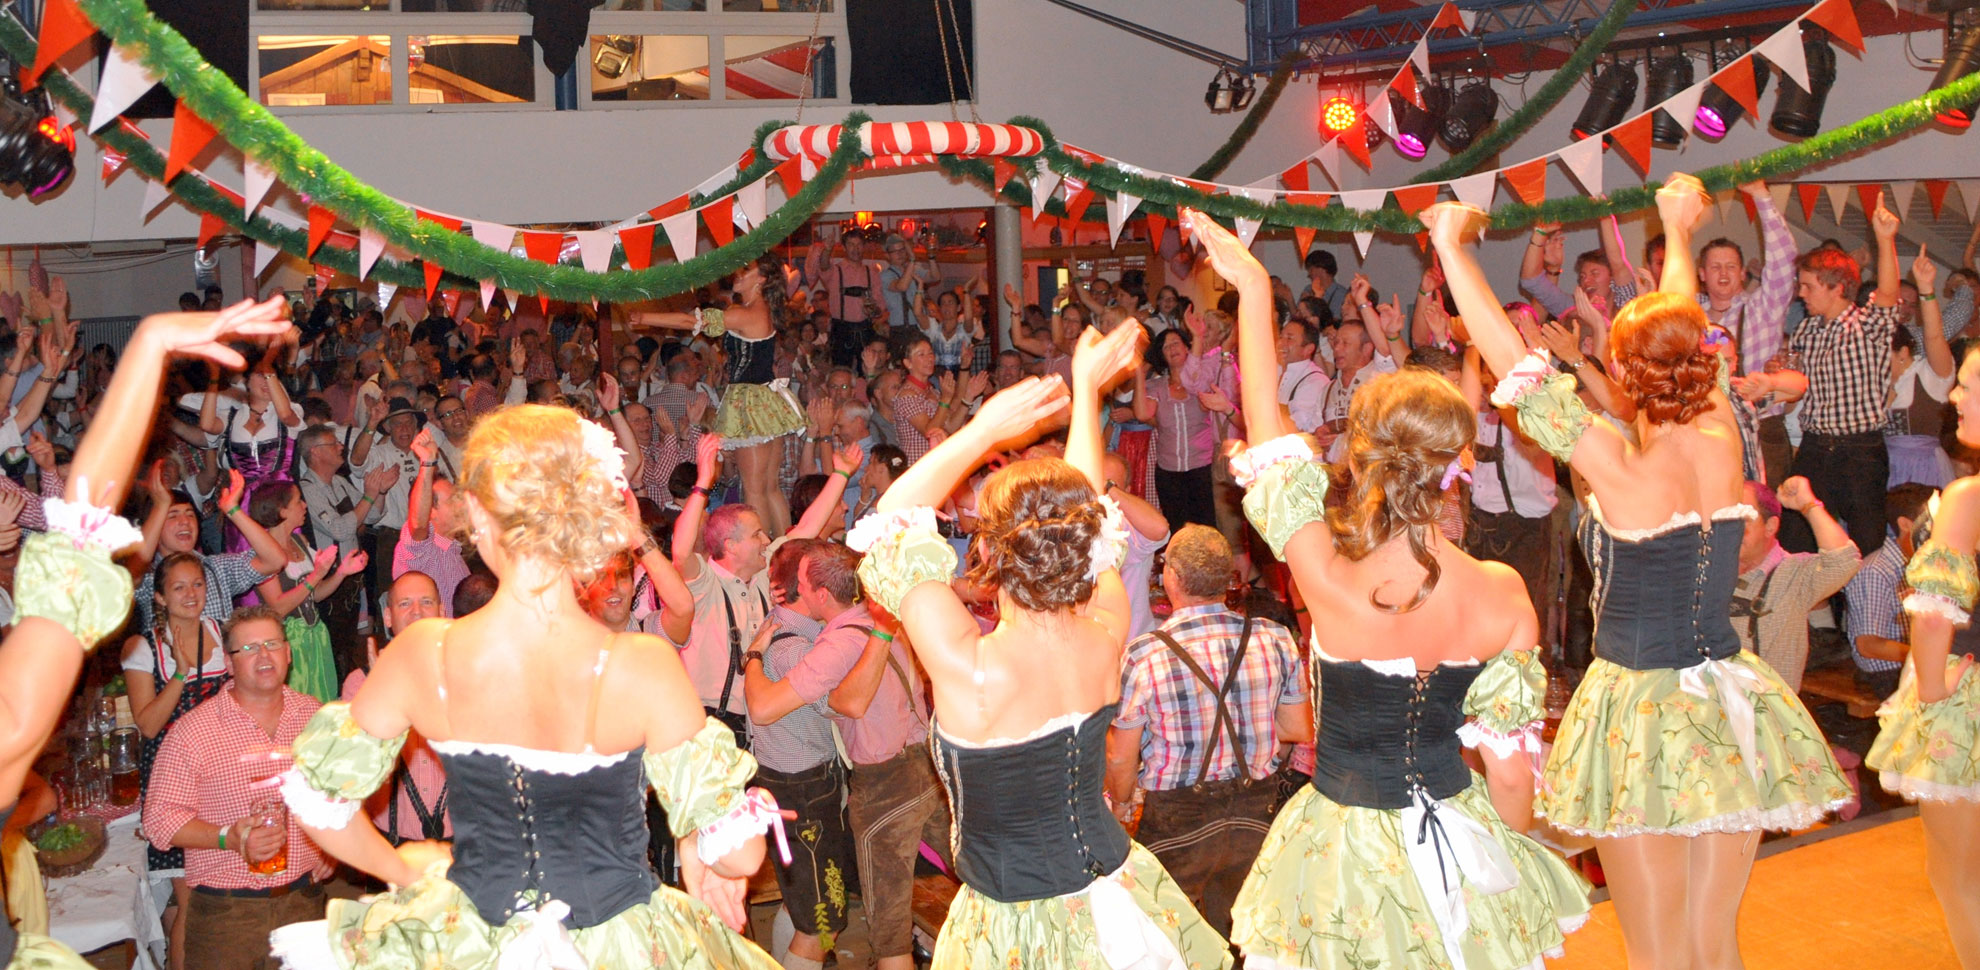 Party-Stimmung auf der Wies'n Gaudi in Eicherscheid